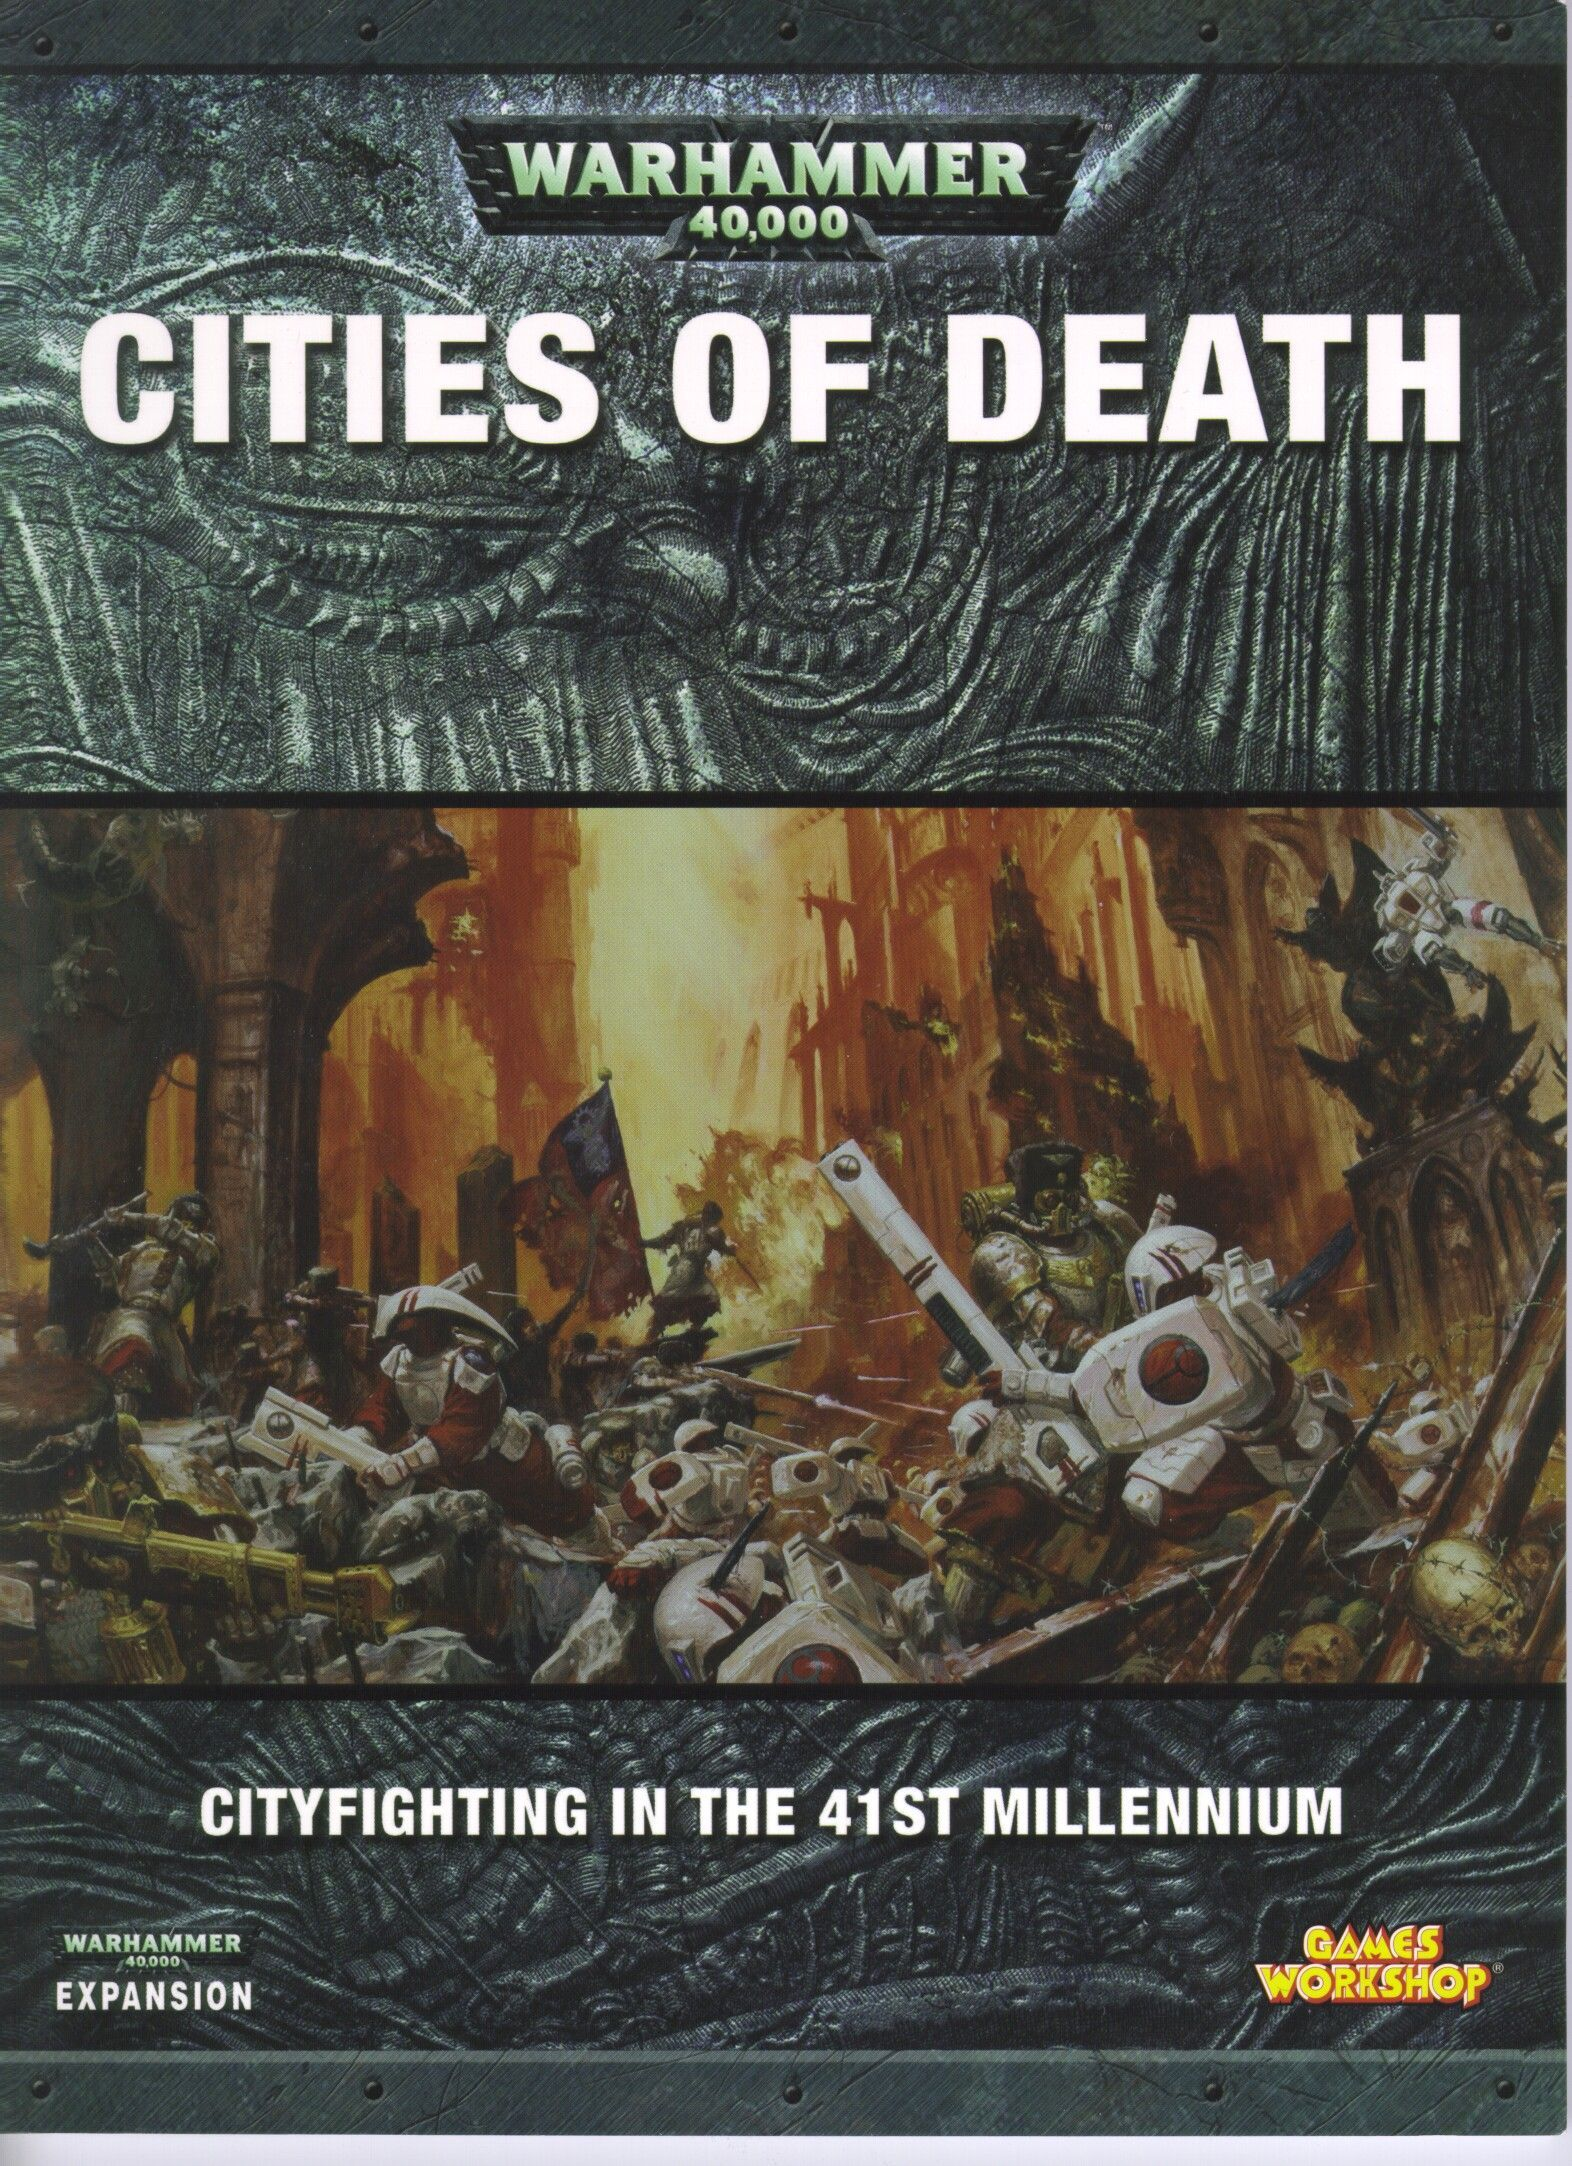 Warhammer 40,000 Cities of Death